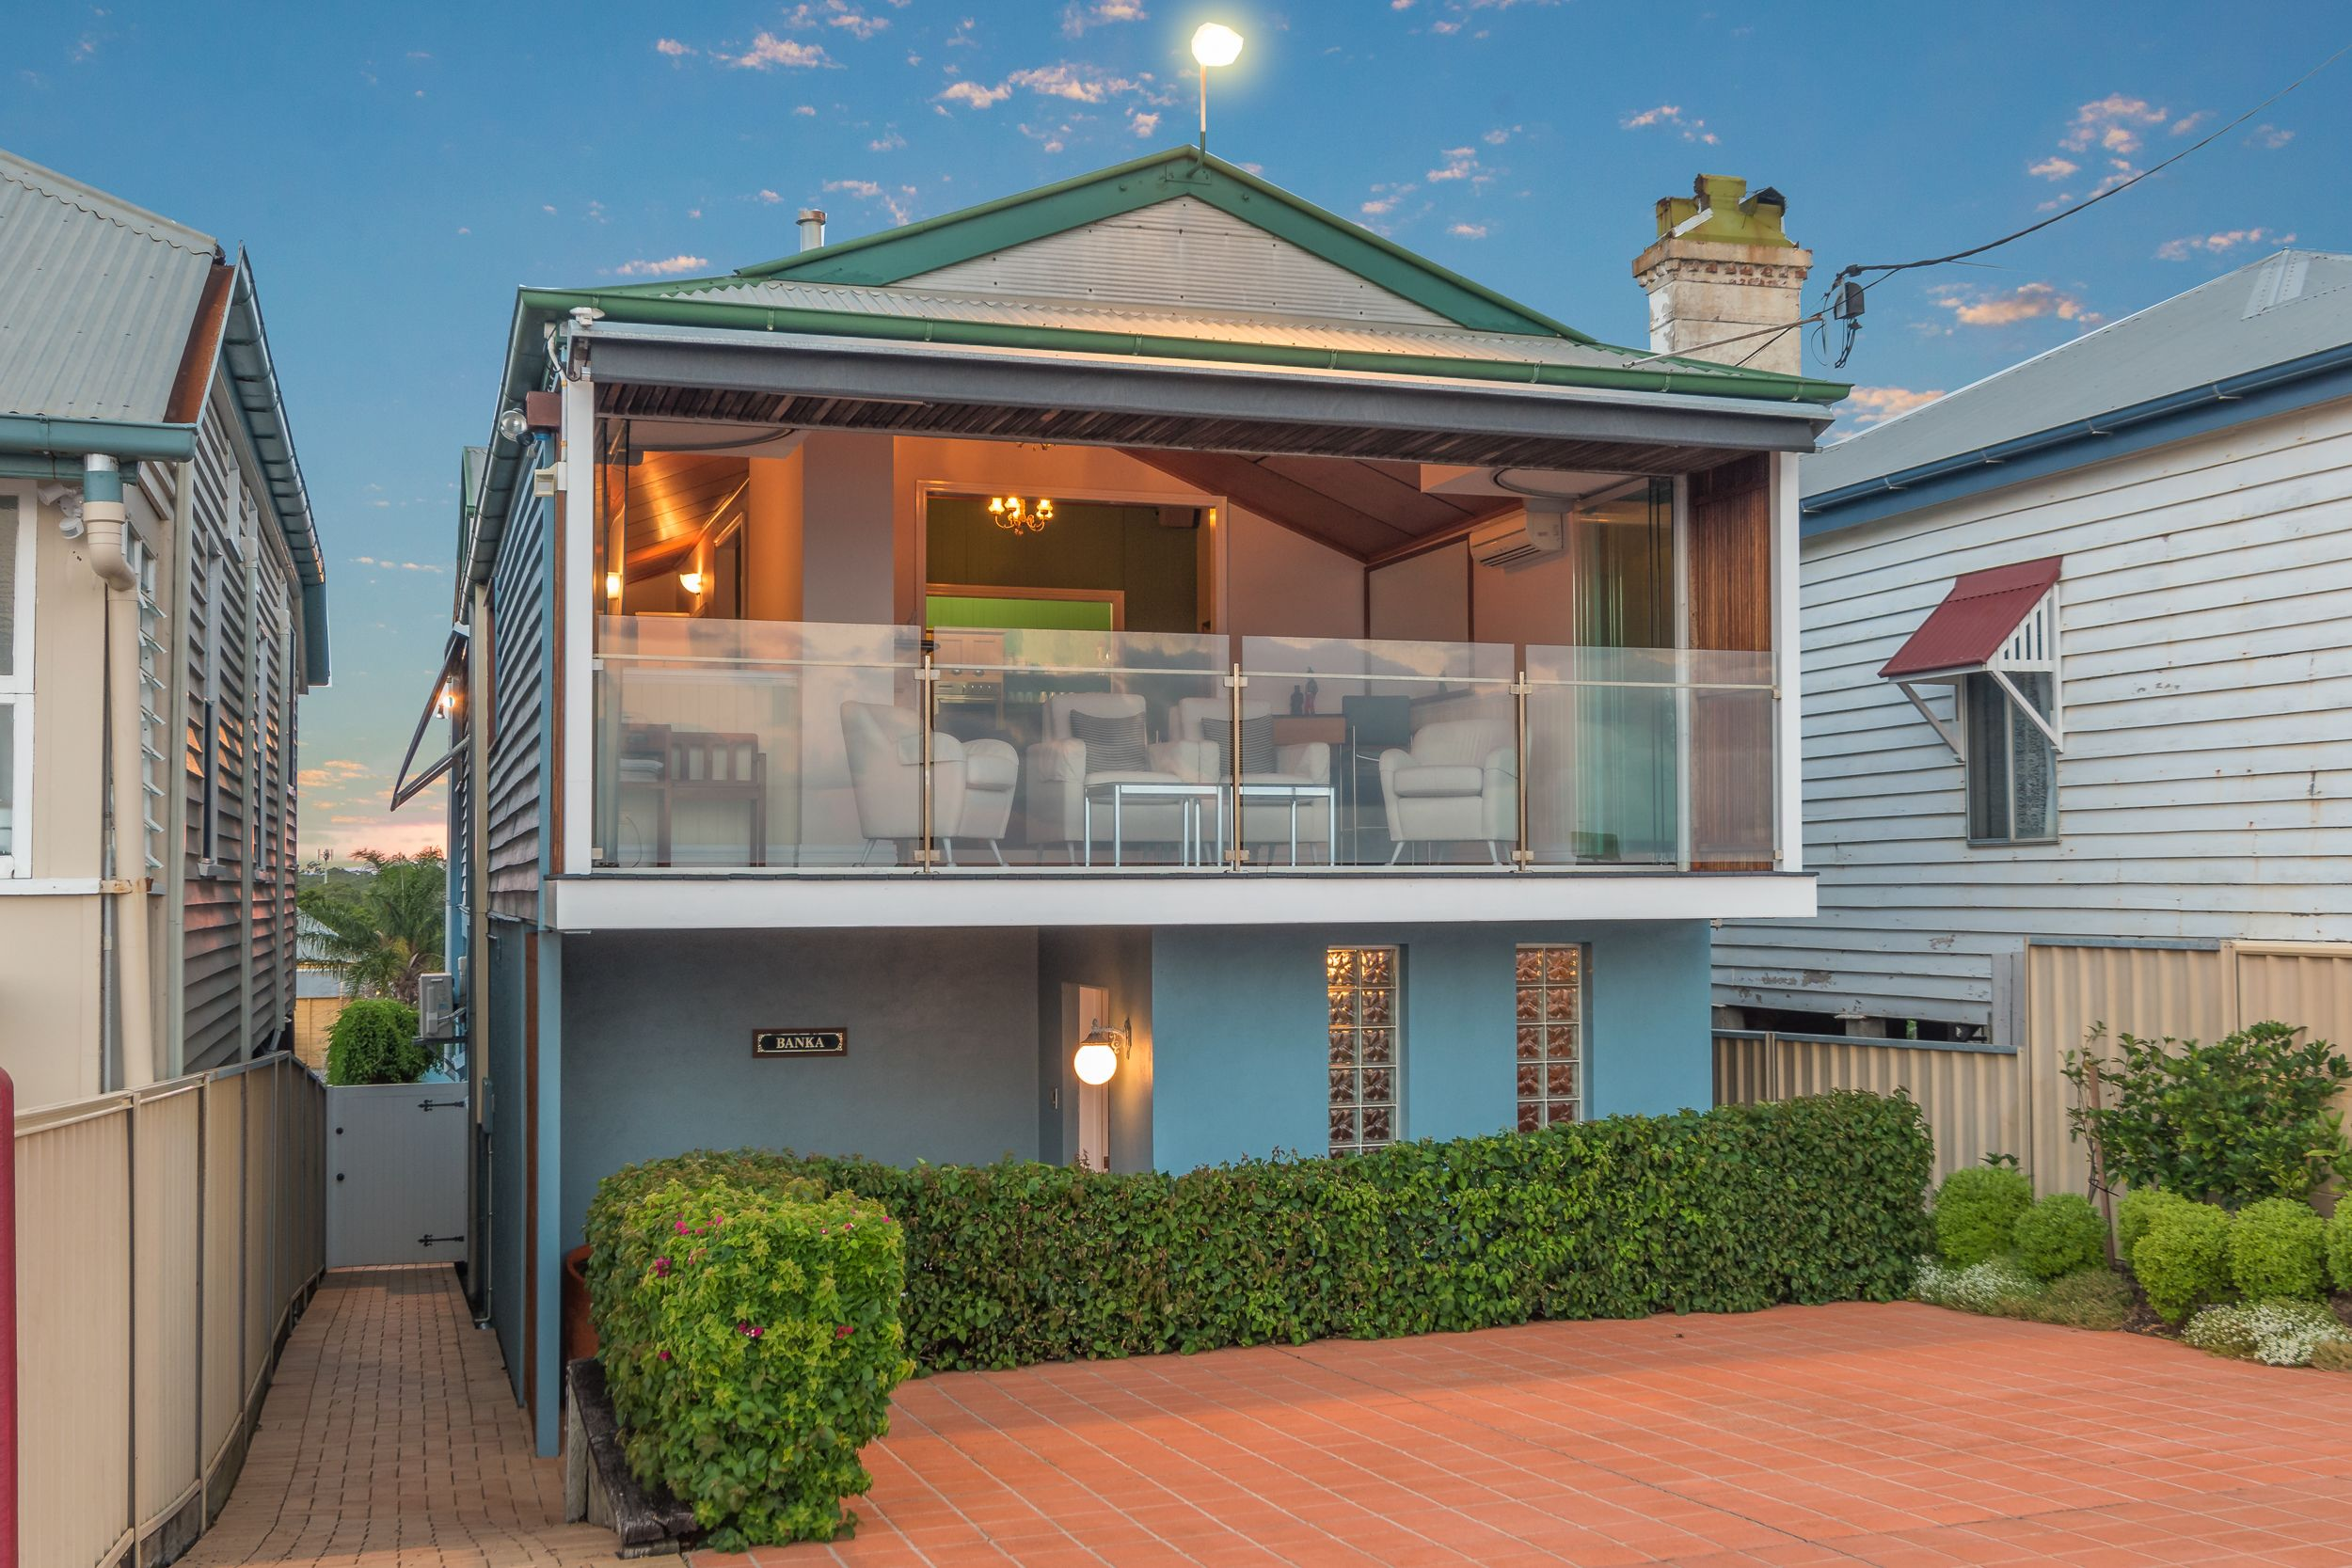 110 Shorncliffe Parade Shorncliffe 4017